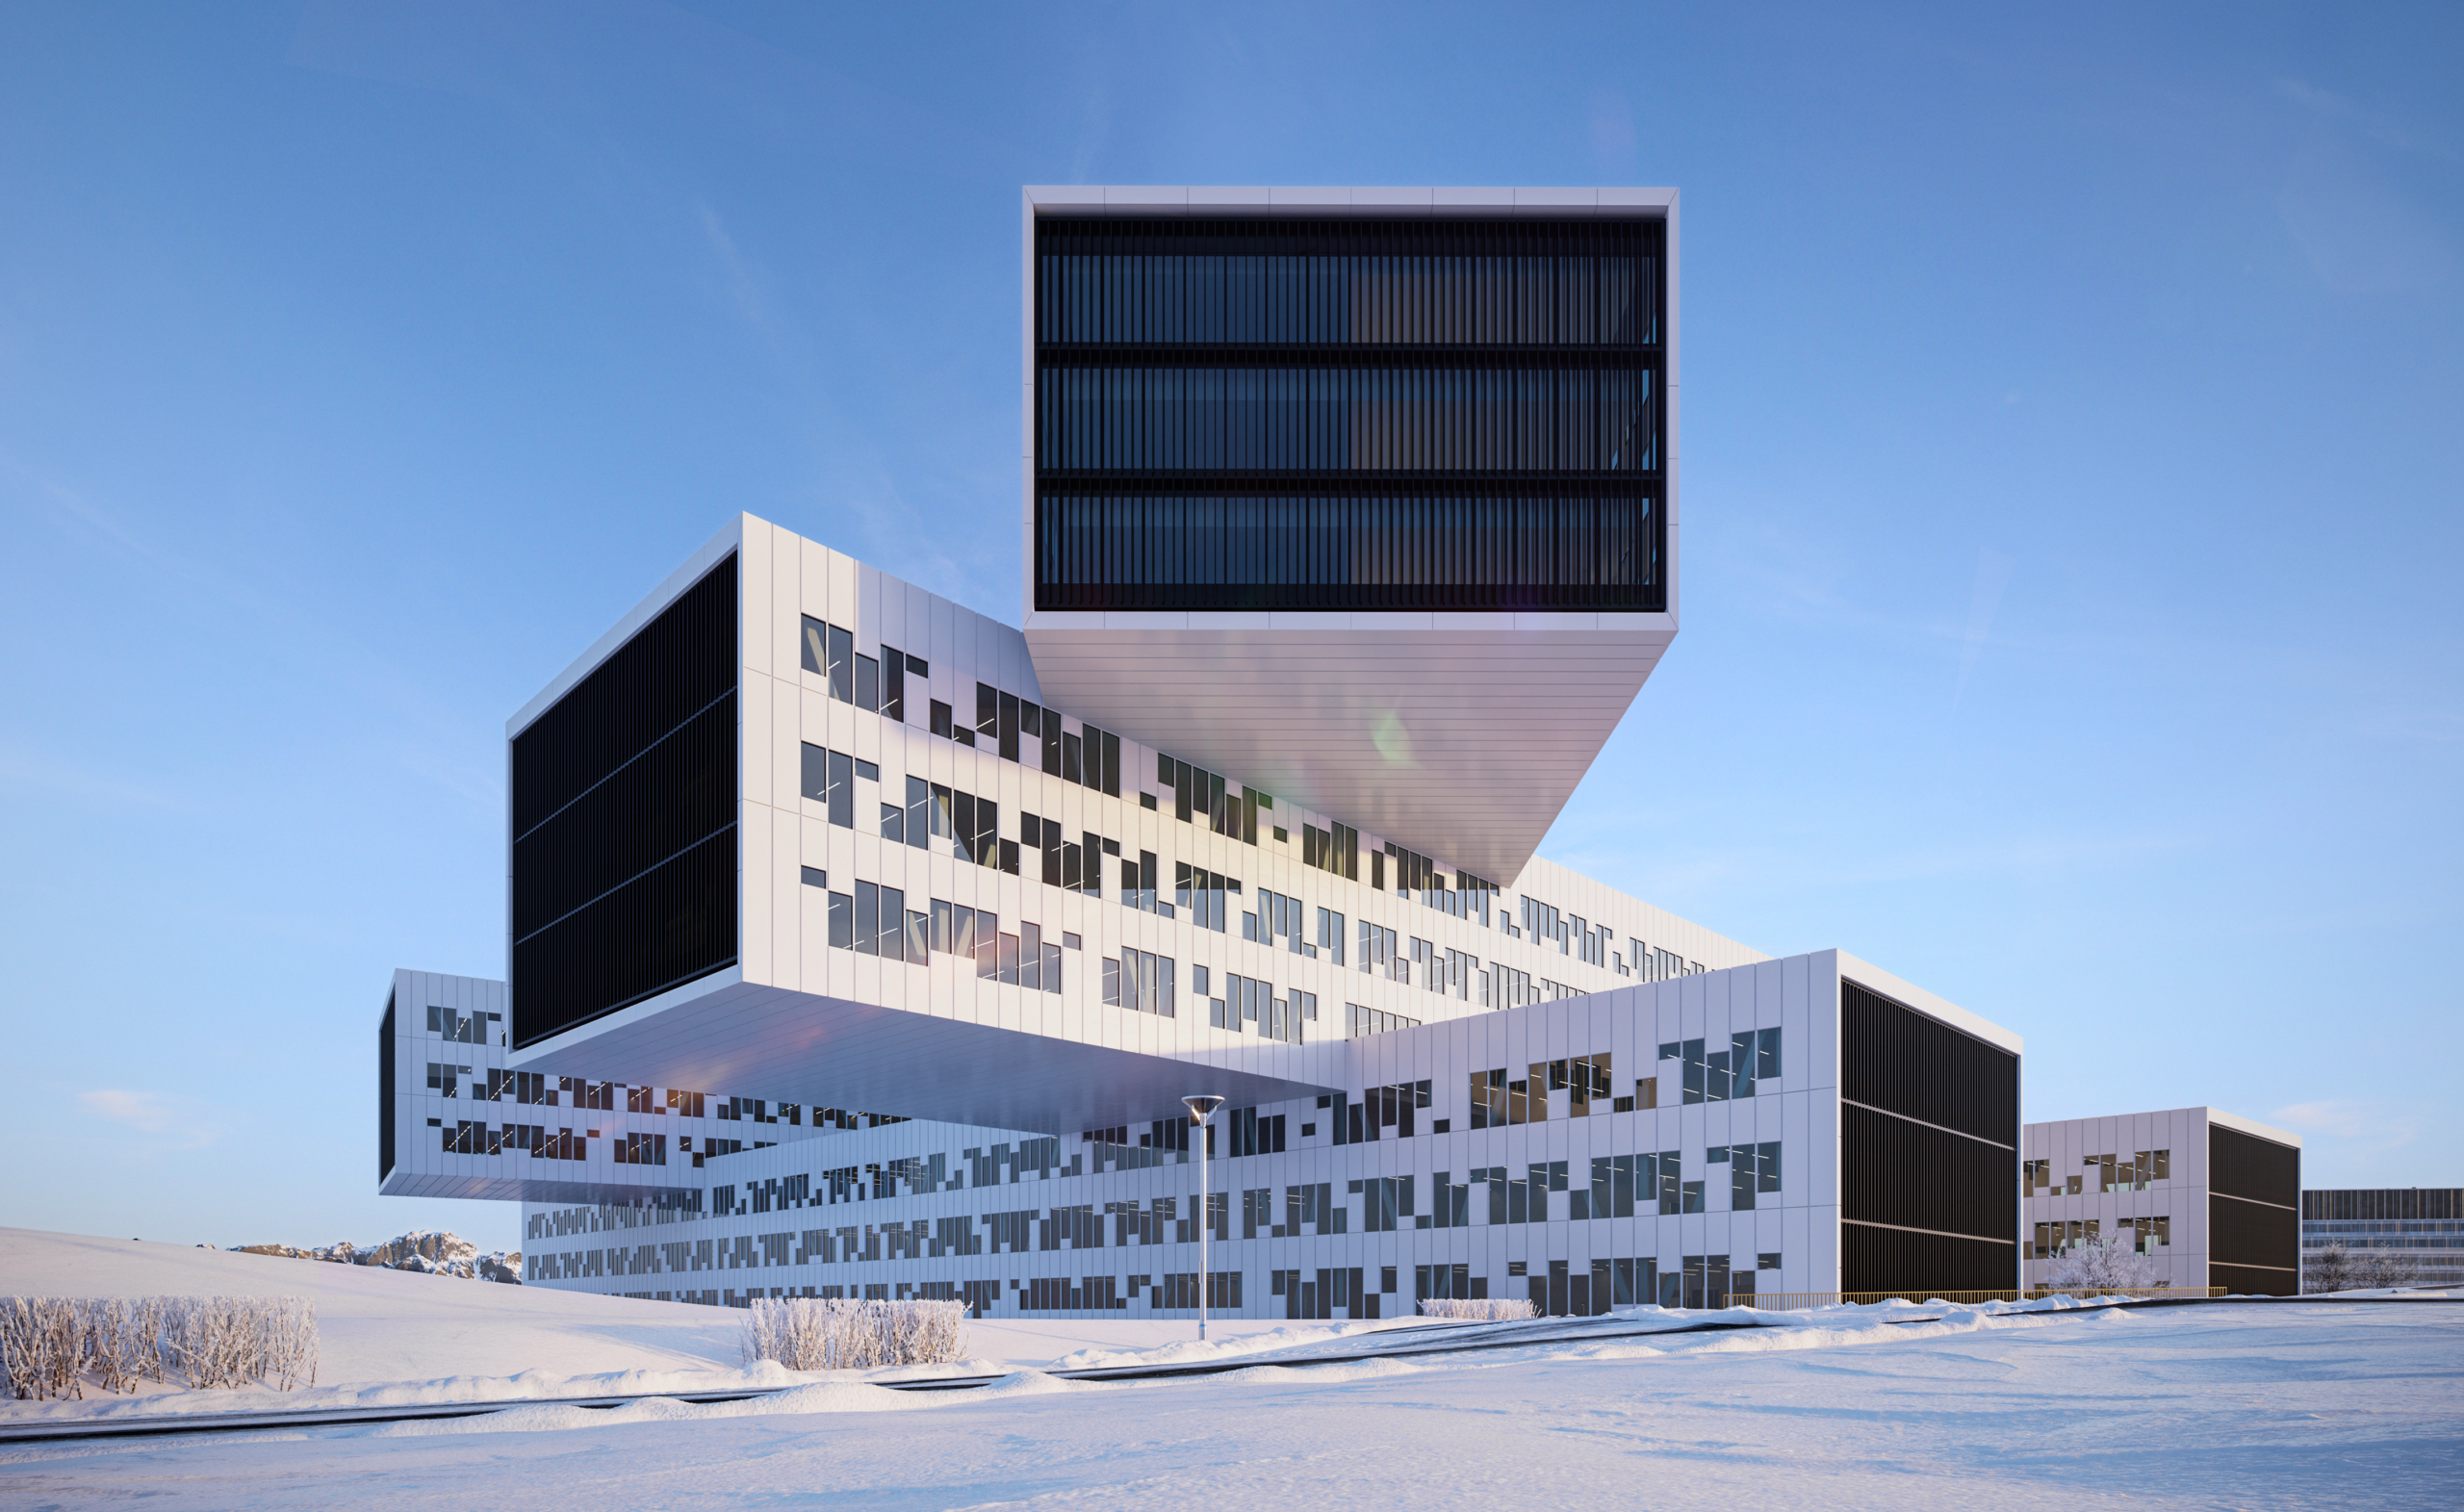 3d rendering Inspired by Statoil HQ in Norway image 2